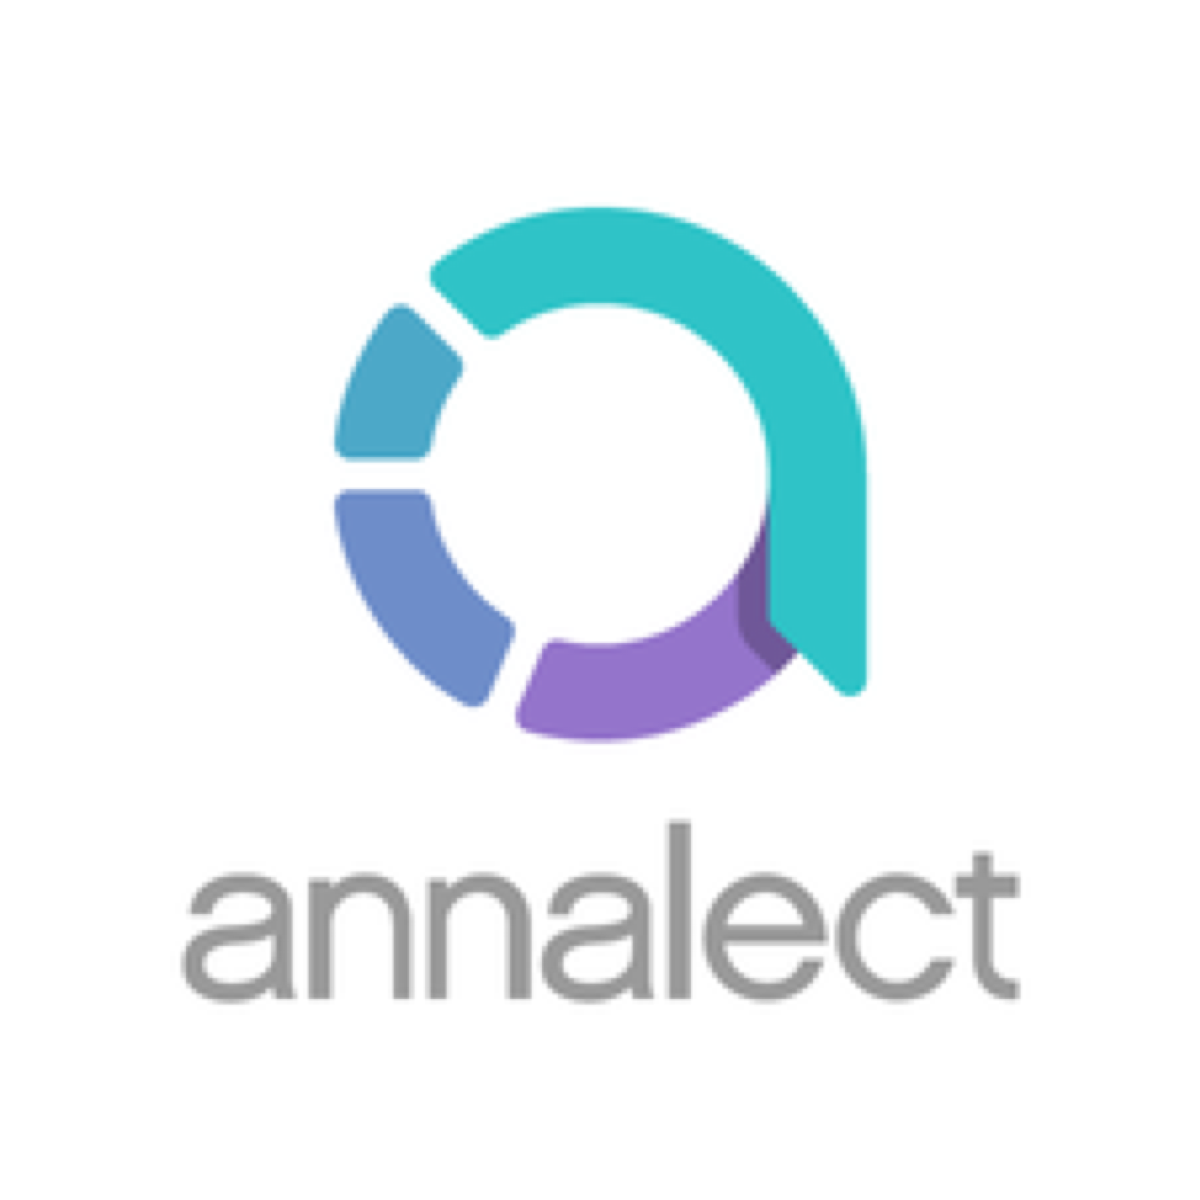 Annalect logo signee.png